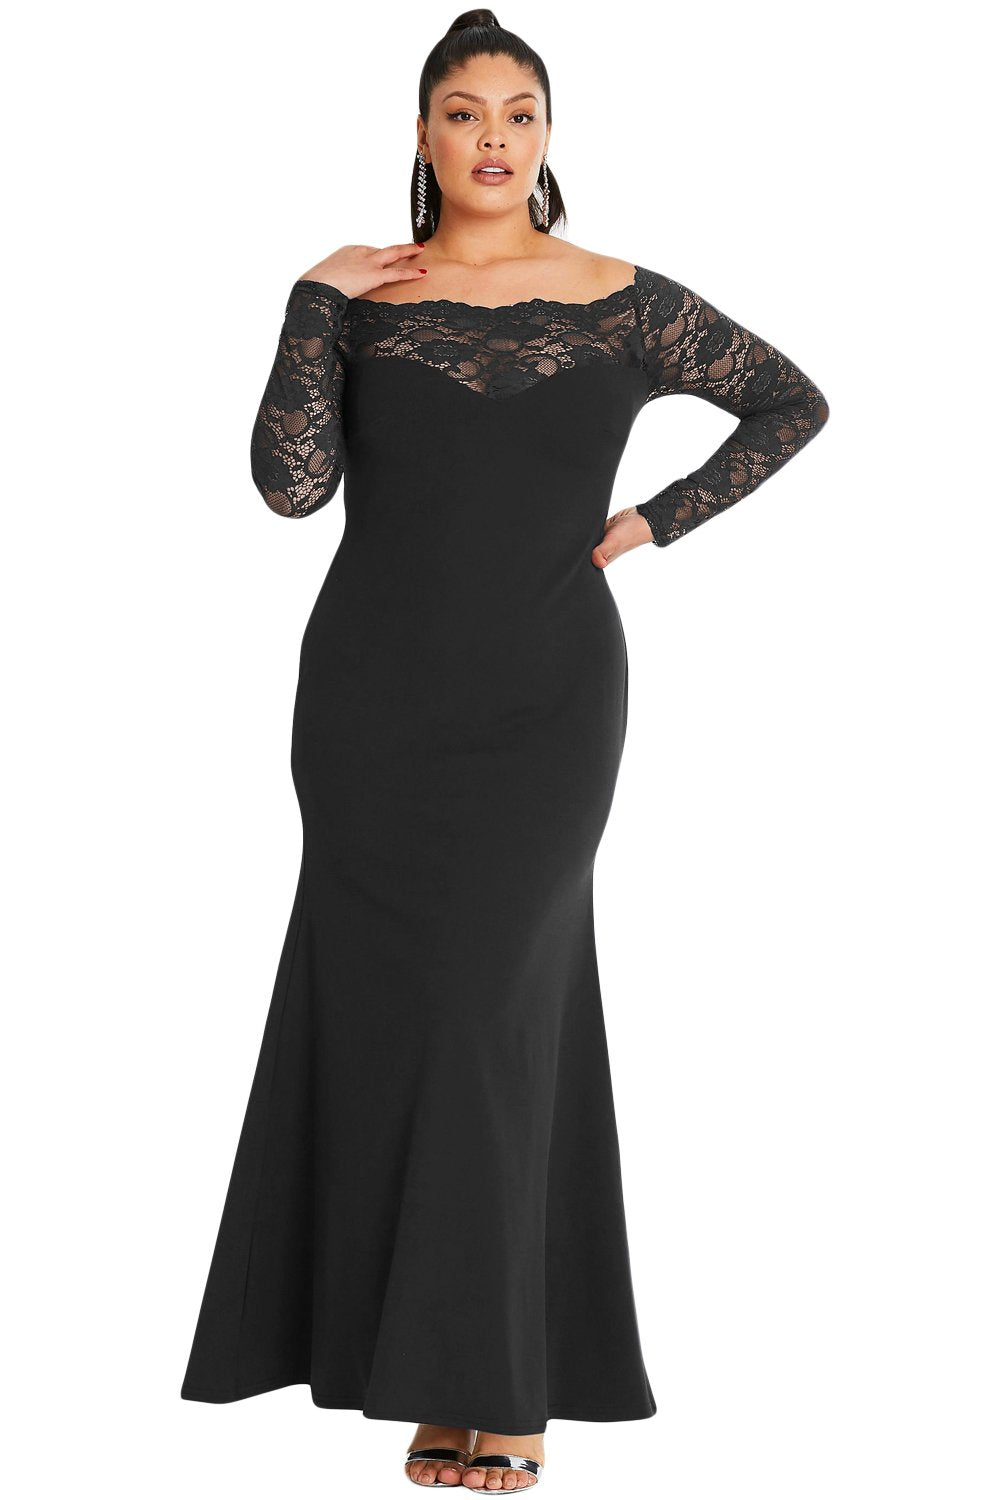 Black Lace Off-The-Shoulder Plus Size Maxi Dress